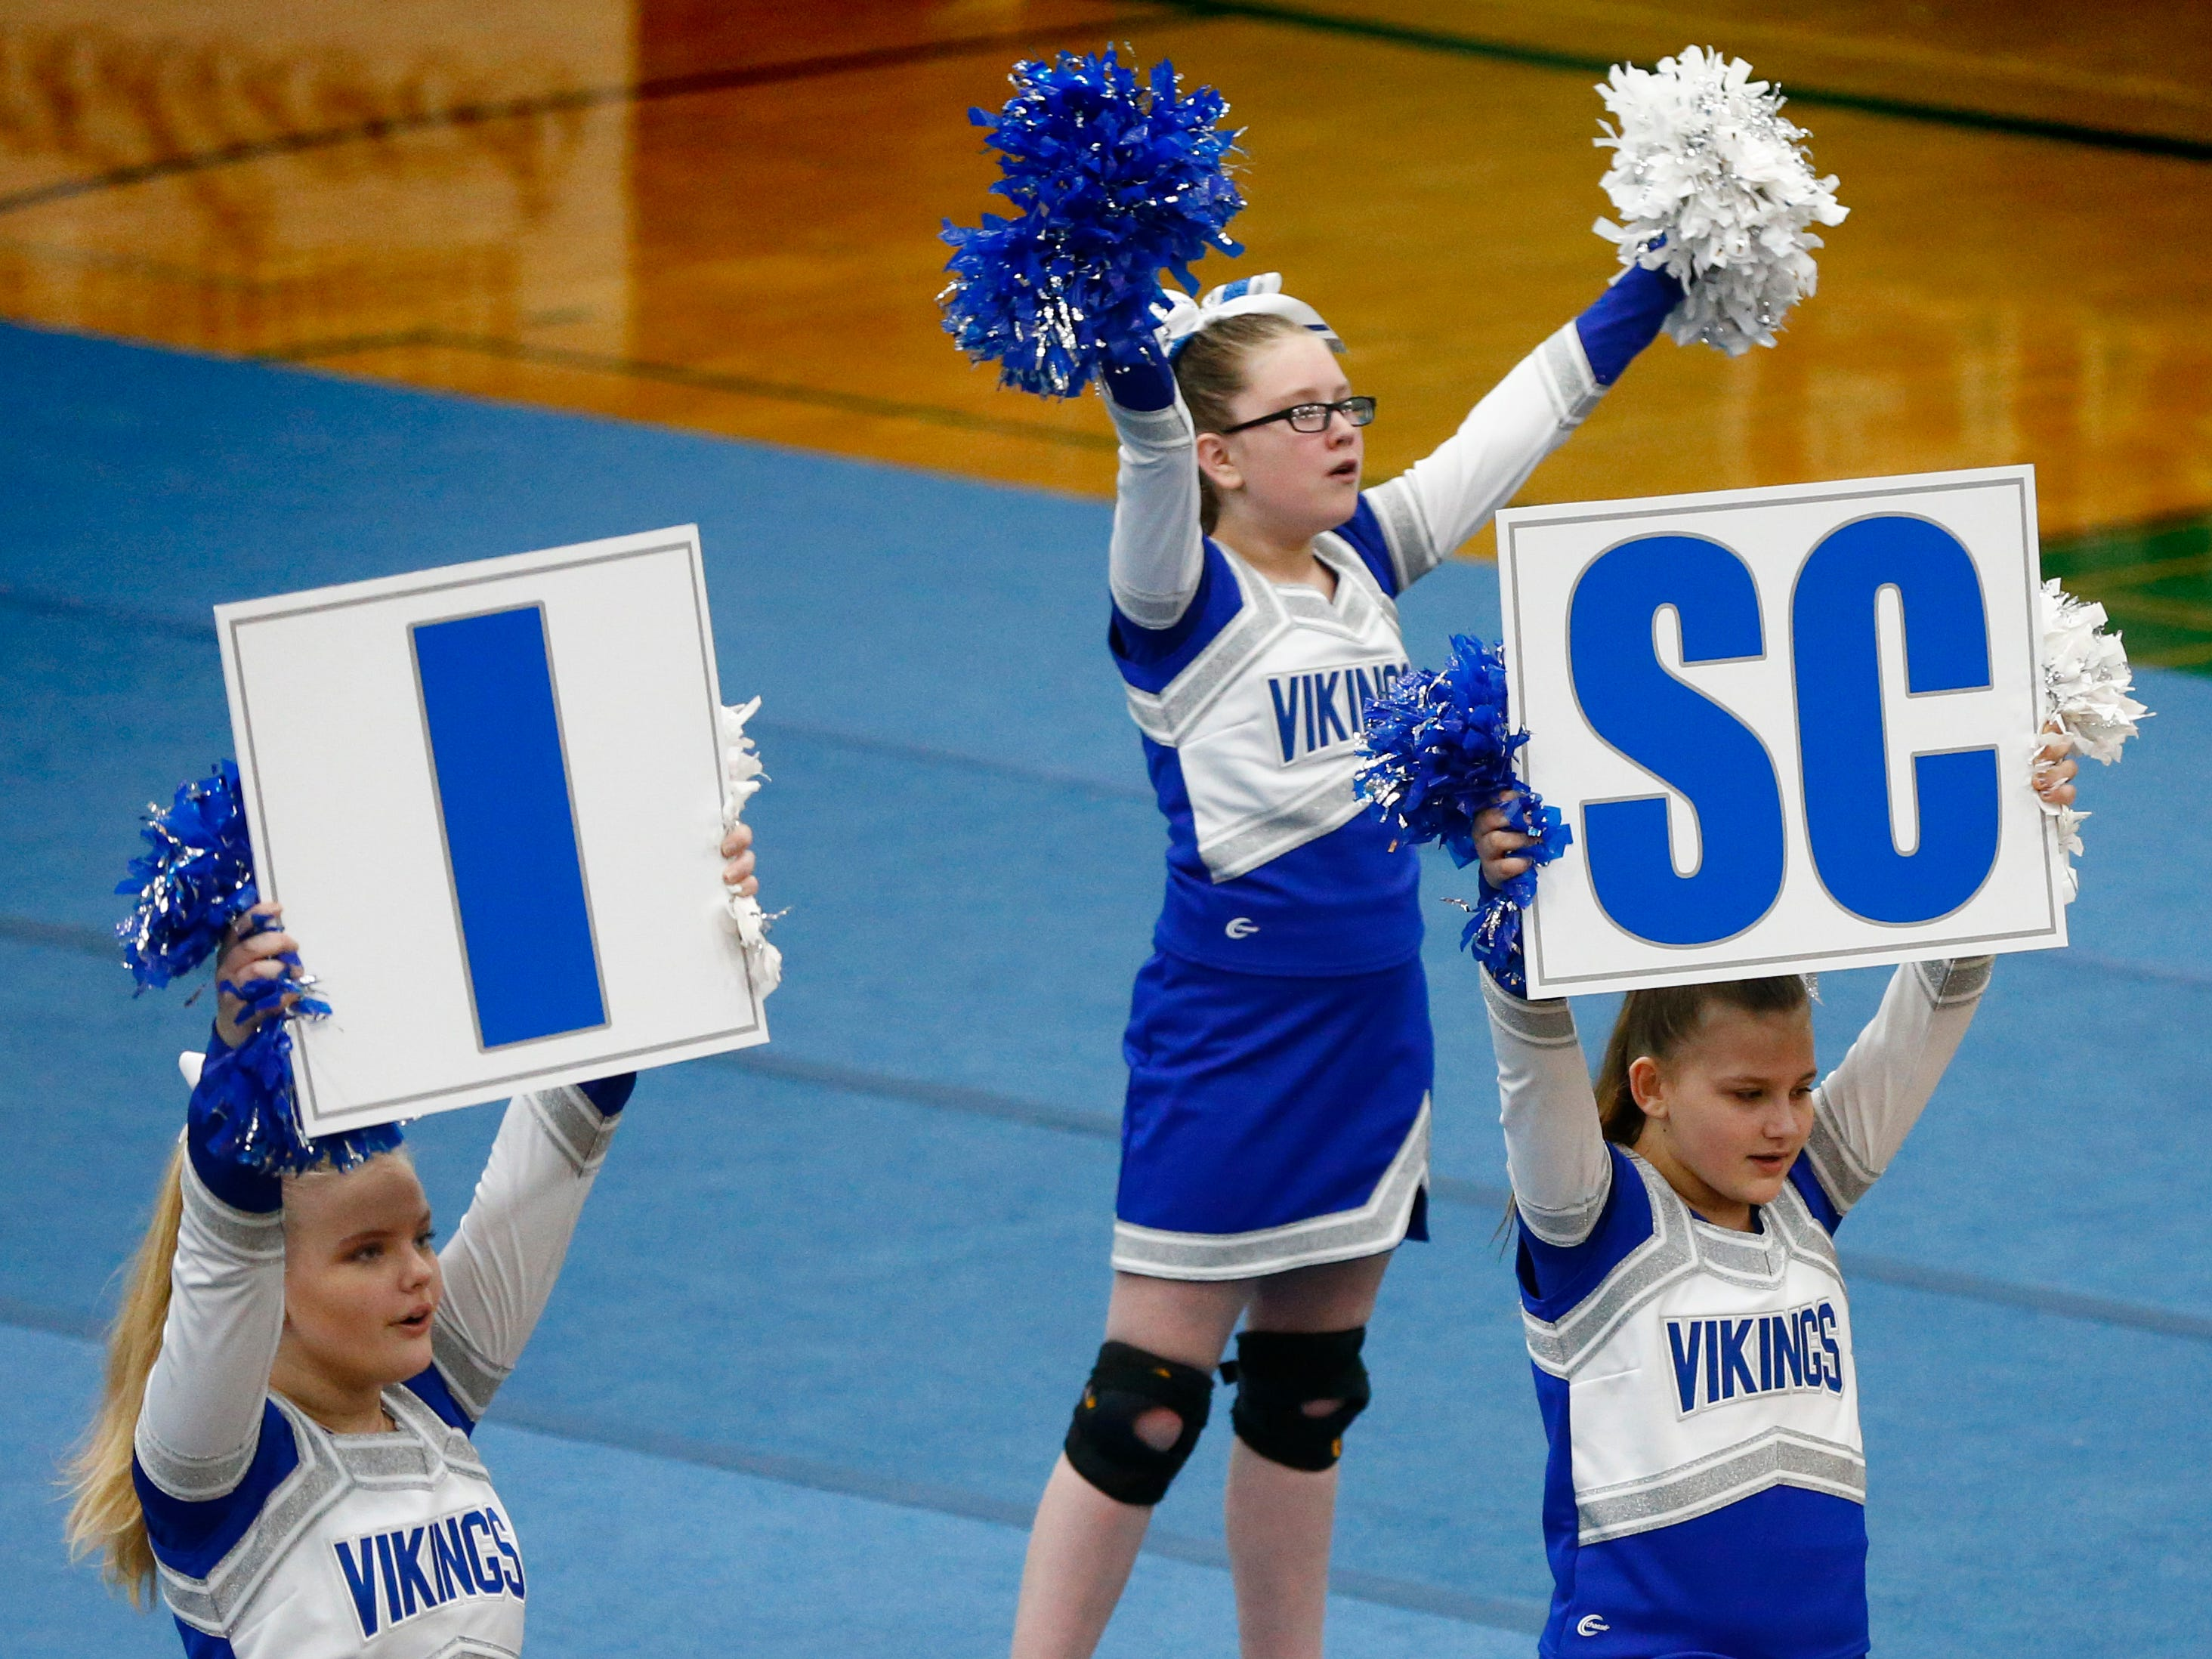 The Wisco Junior Vikings Blue team compete in the Middle School Non Stunt division during the iCheer Competition at Greendale High School on Jan. 26.